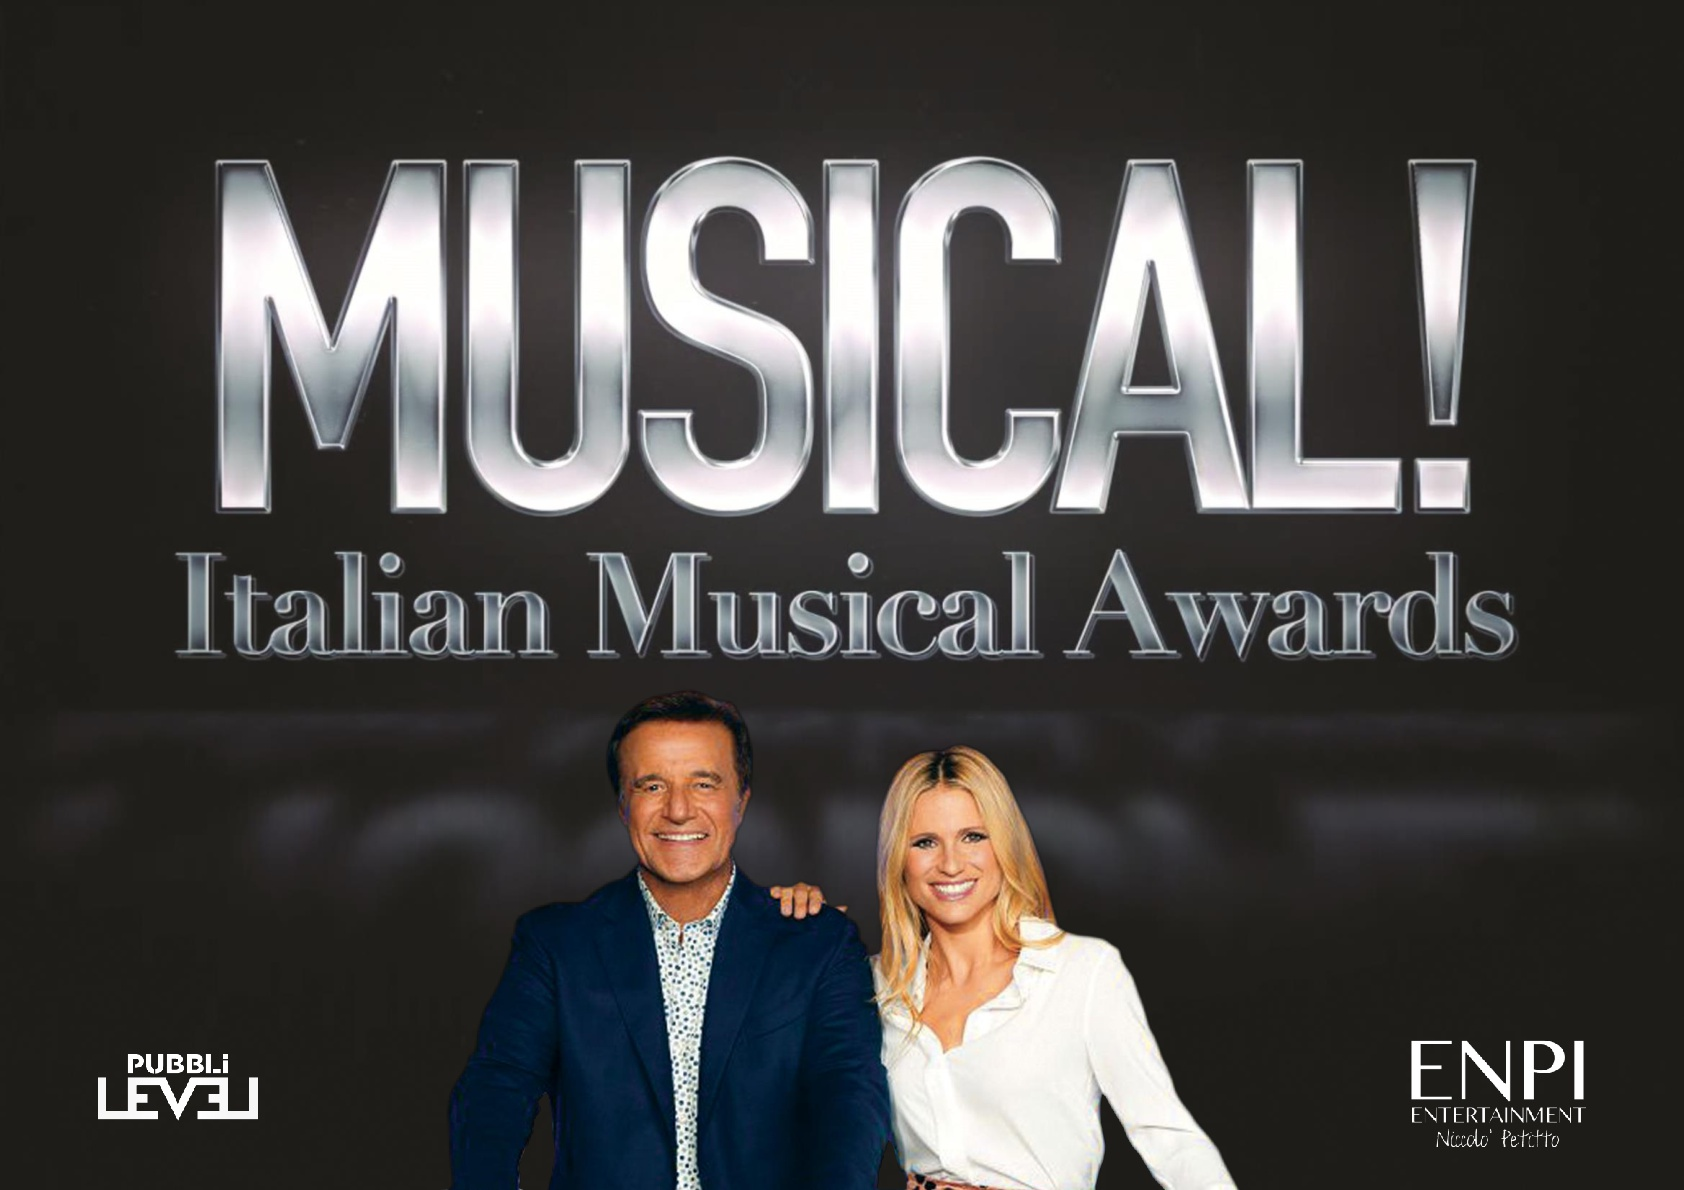 Italian Musical Awards